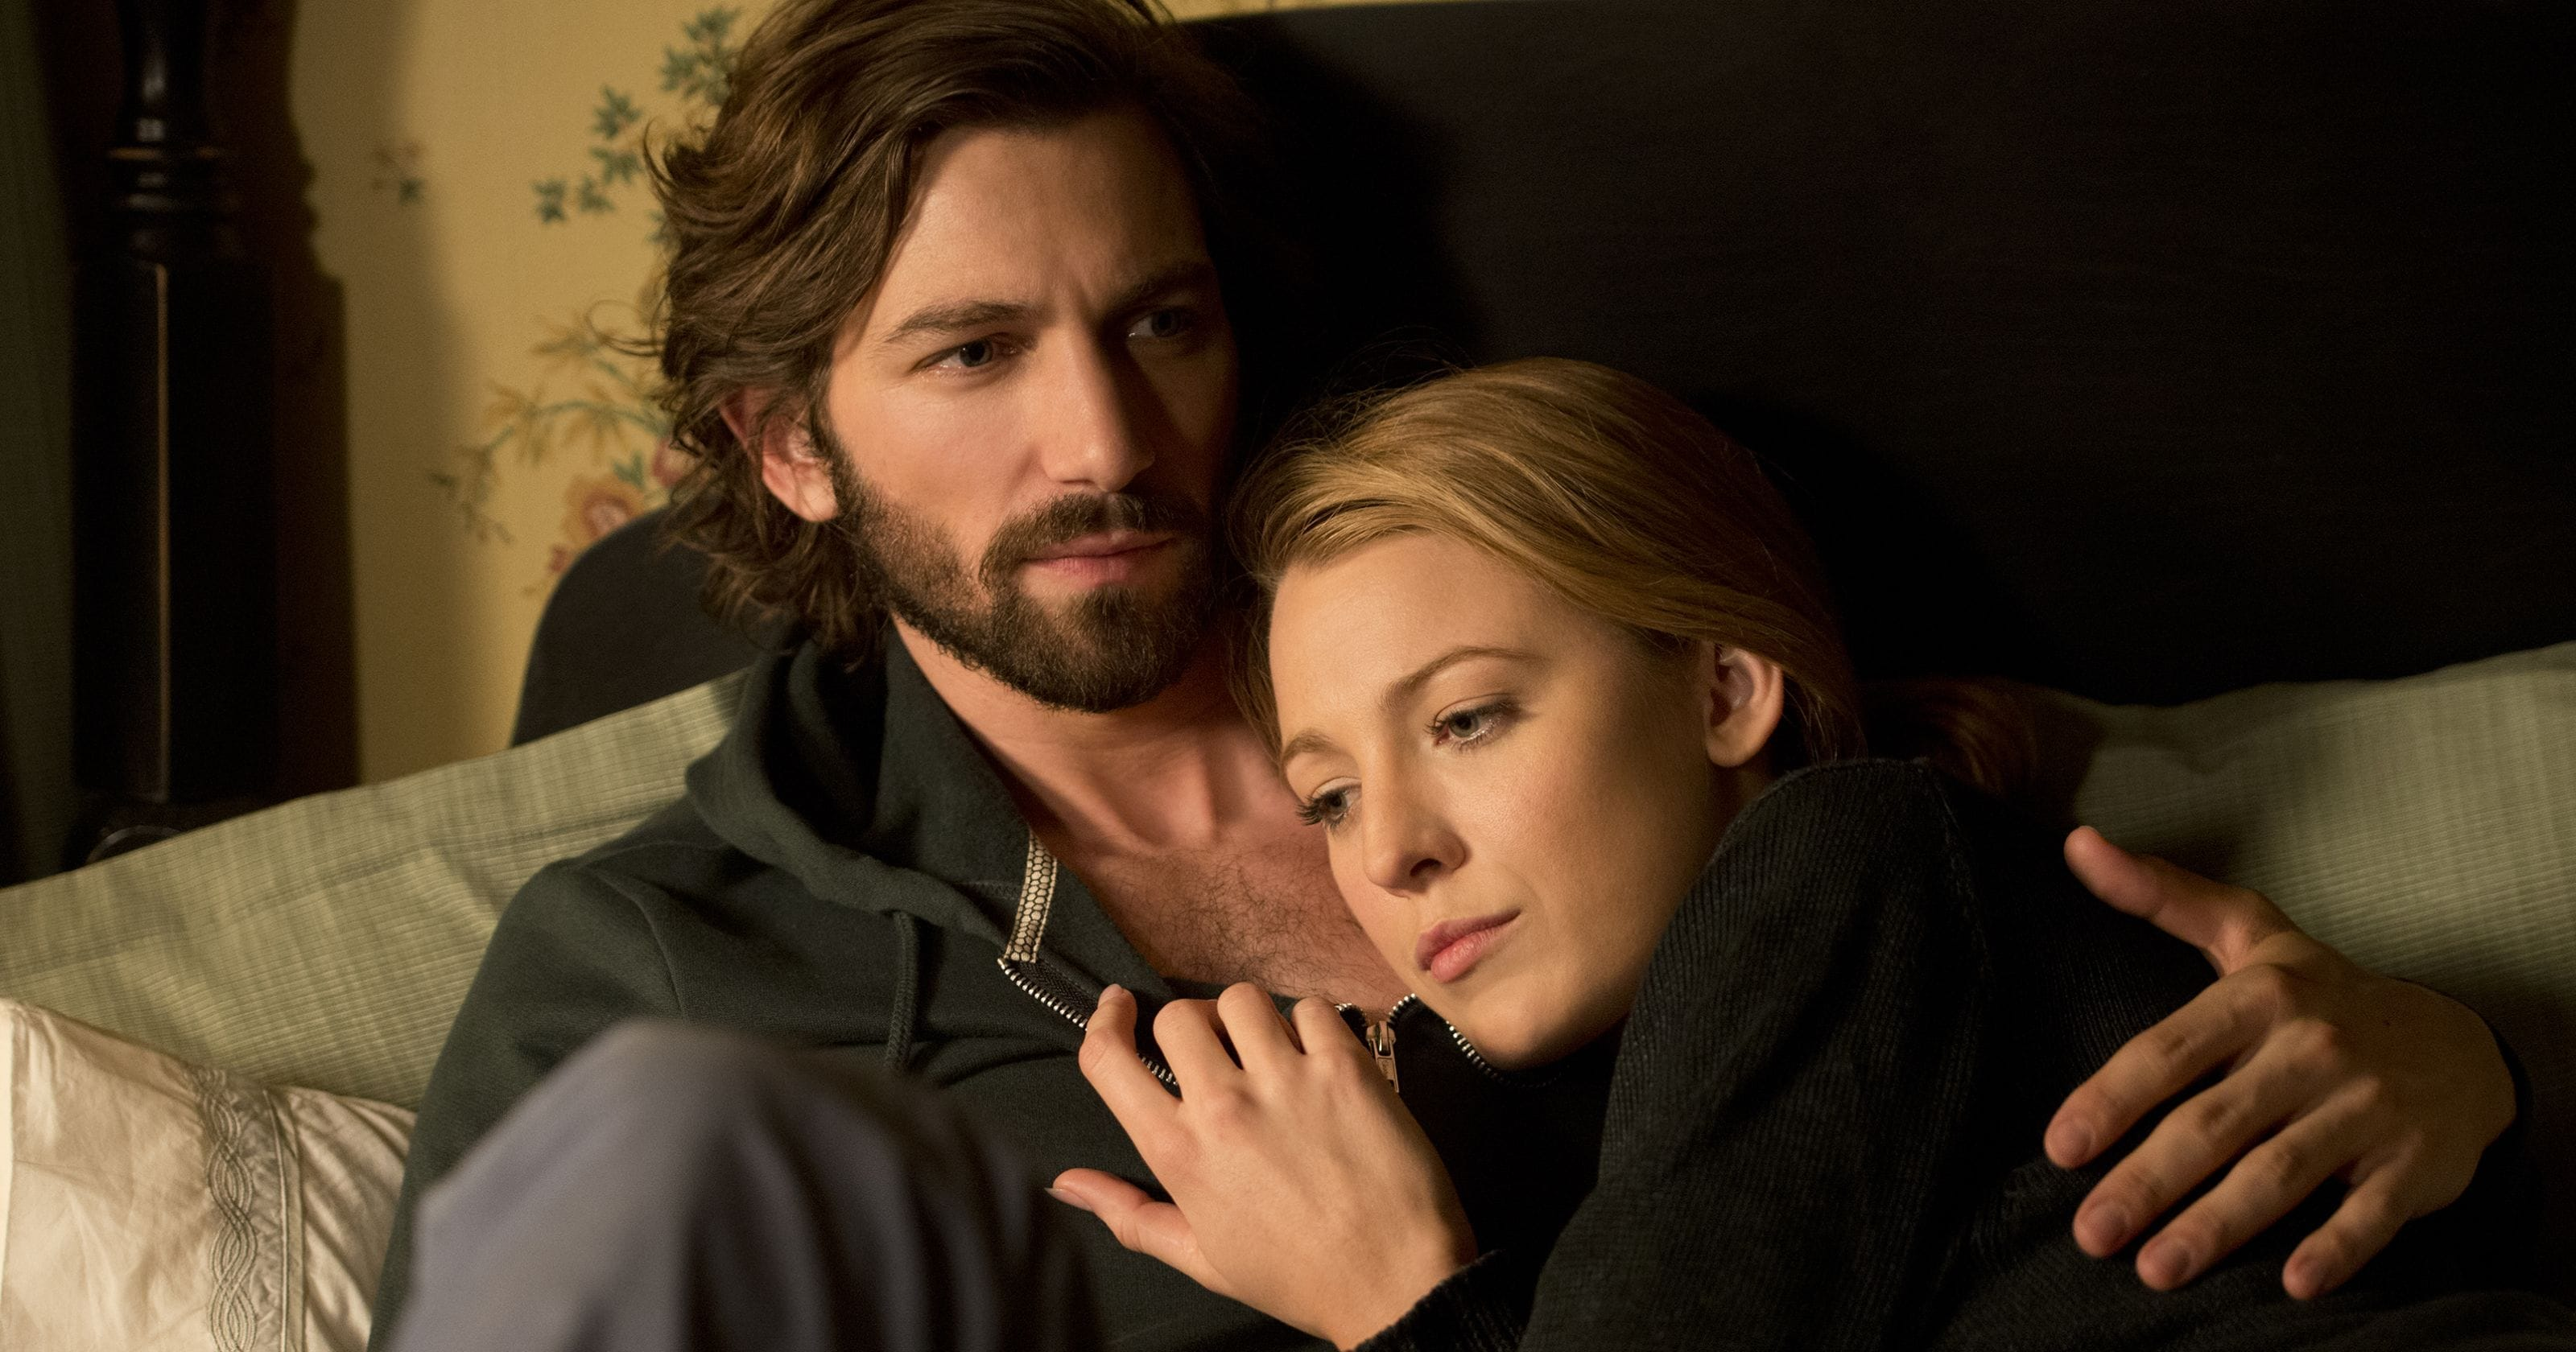 The Age of Adaline Download